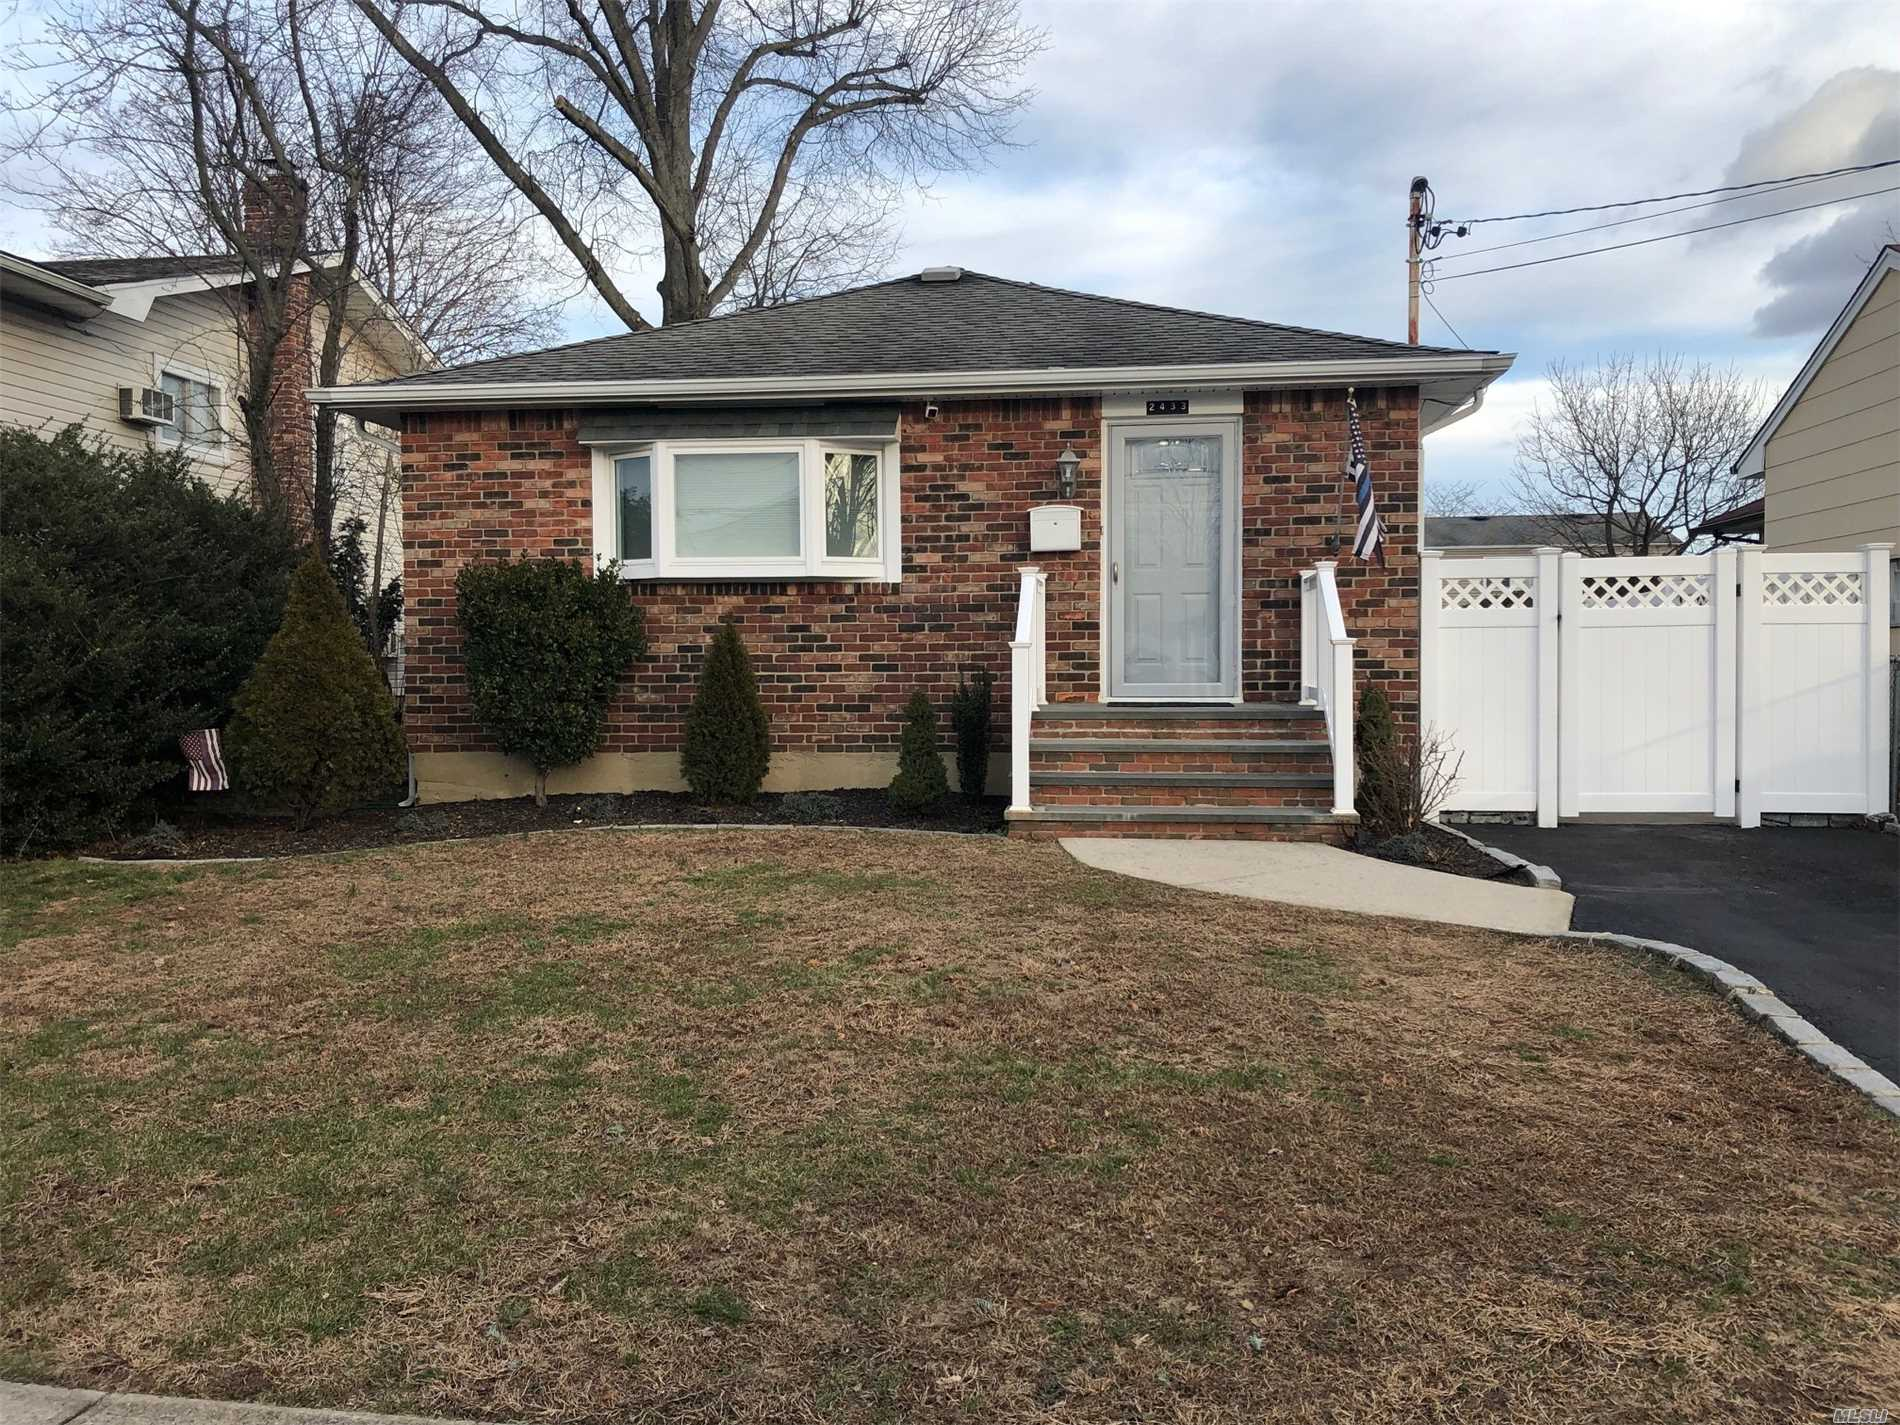 Mint Ranch, Move in Ready!! Updated Kitchen with Black Stainless Appliances. New Windows, Doors, and PVC Fence. Efficient home with solar panels. 200 Amp Electric, Hardwood Floors, Hi Hats Galore, Gas and Oil in the house, Brick & Bluestone Stoop. Walk To Park This Home Is Larger Than It Appears And All Rooms Are Nice Size. Priced To Sell! No Flood Insurance Required!!